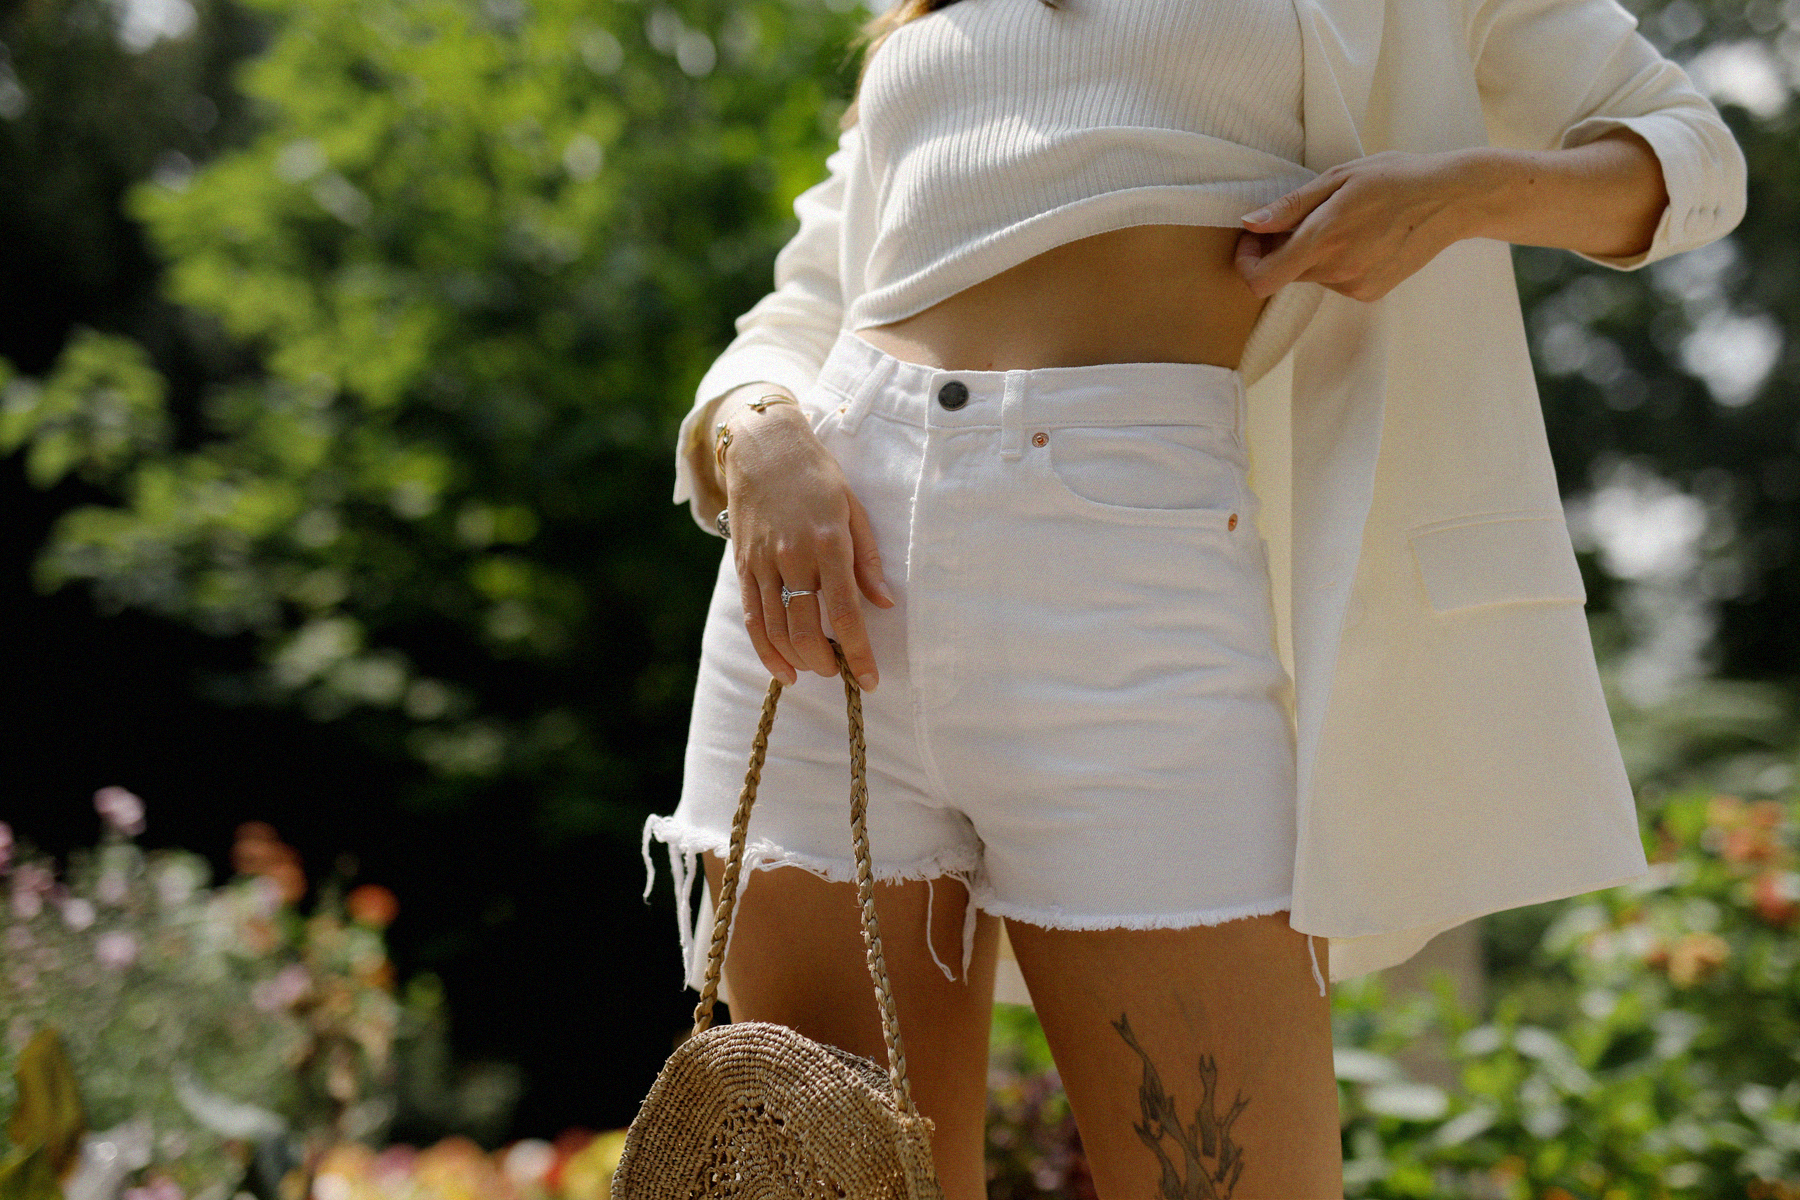 all white & other stories shorts blazer straw hat summer bag rouje hermes oran sandals statue marble dusseldorf düsseldorf dus art artist artsy fashionblogger modeblog jane birkin jeanne damas outfit mode inspiration look seventies ricarda schernus 2